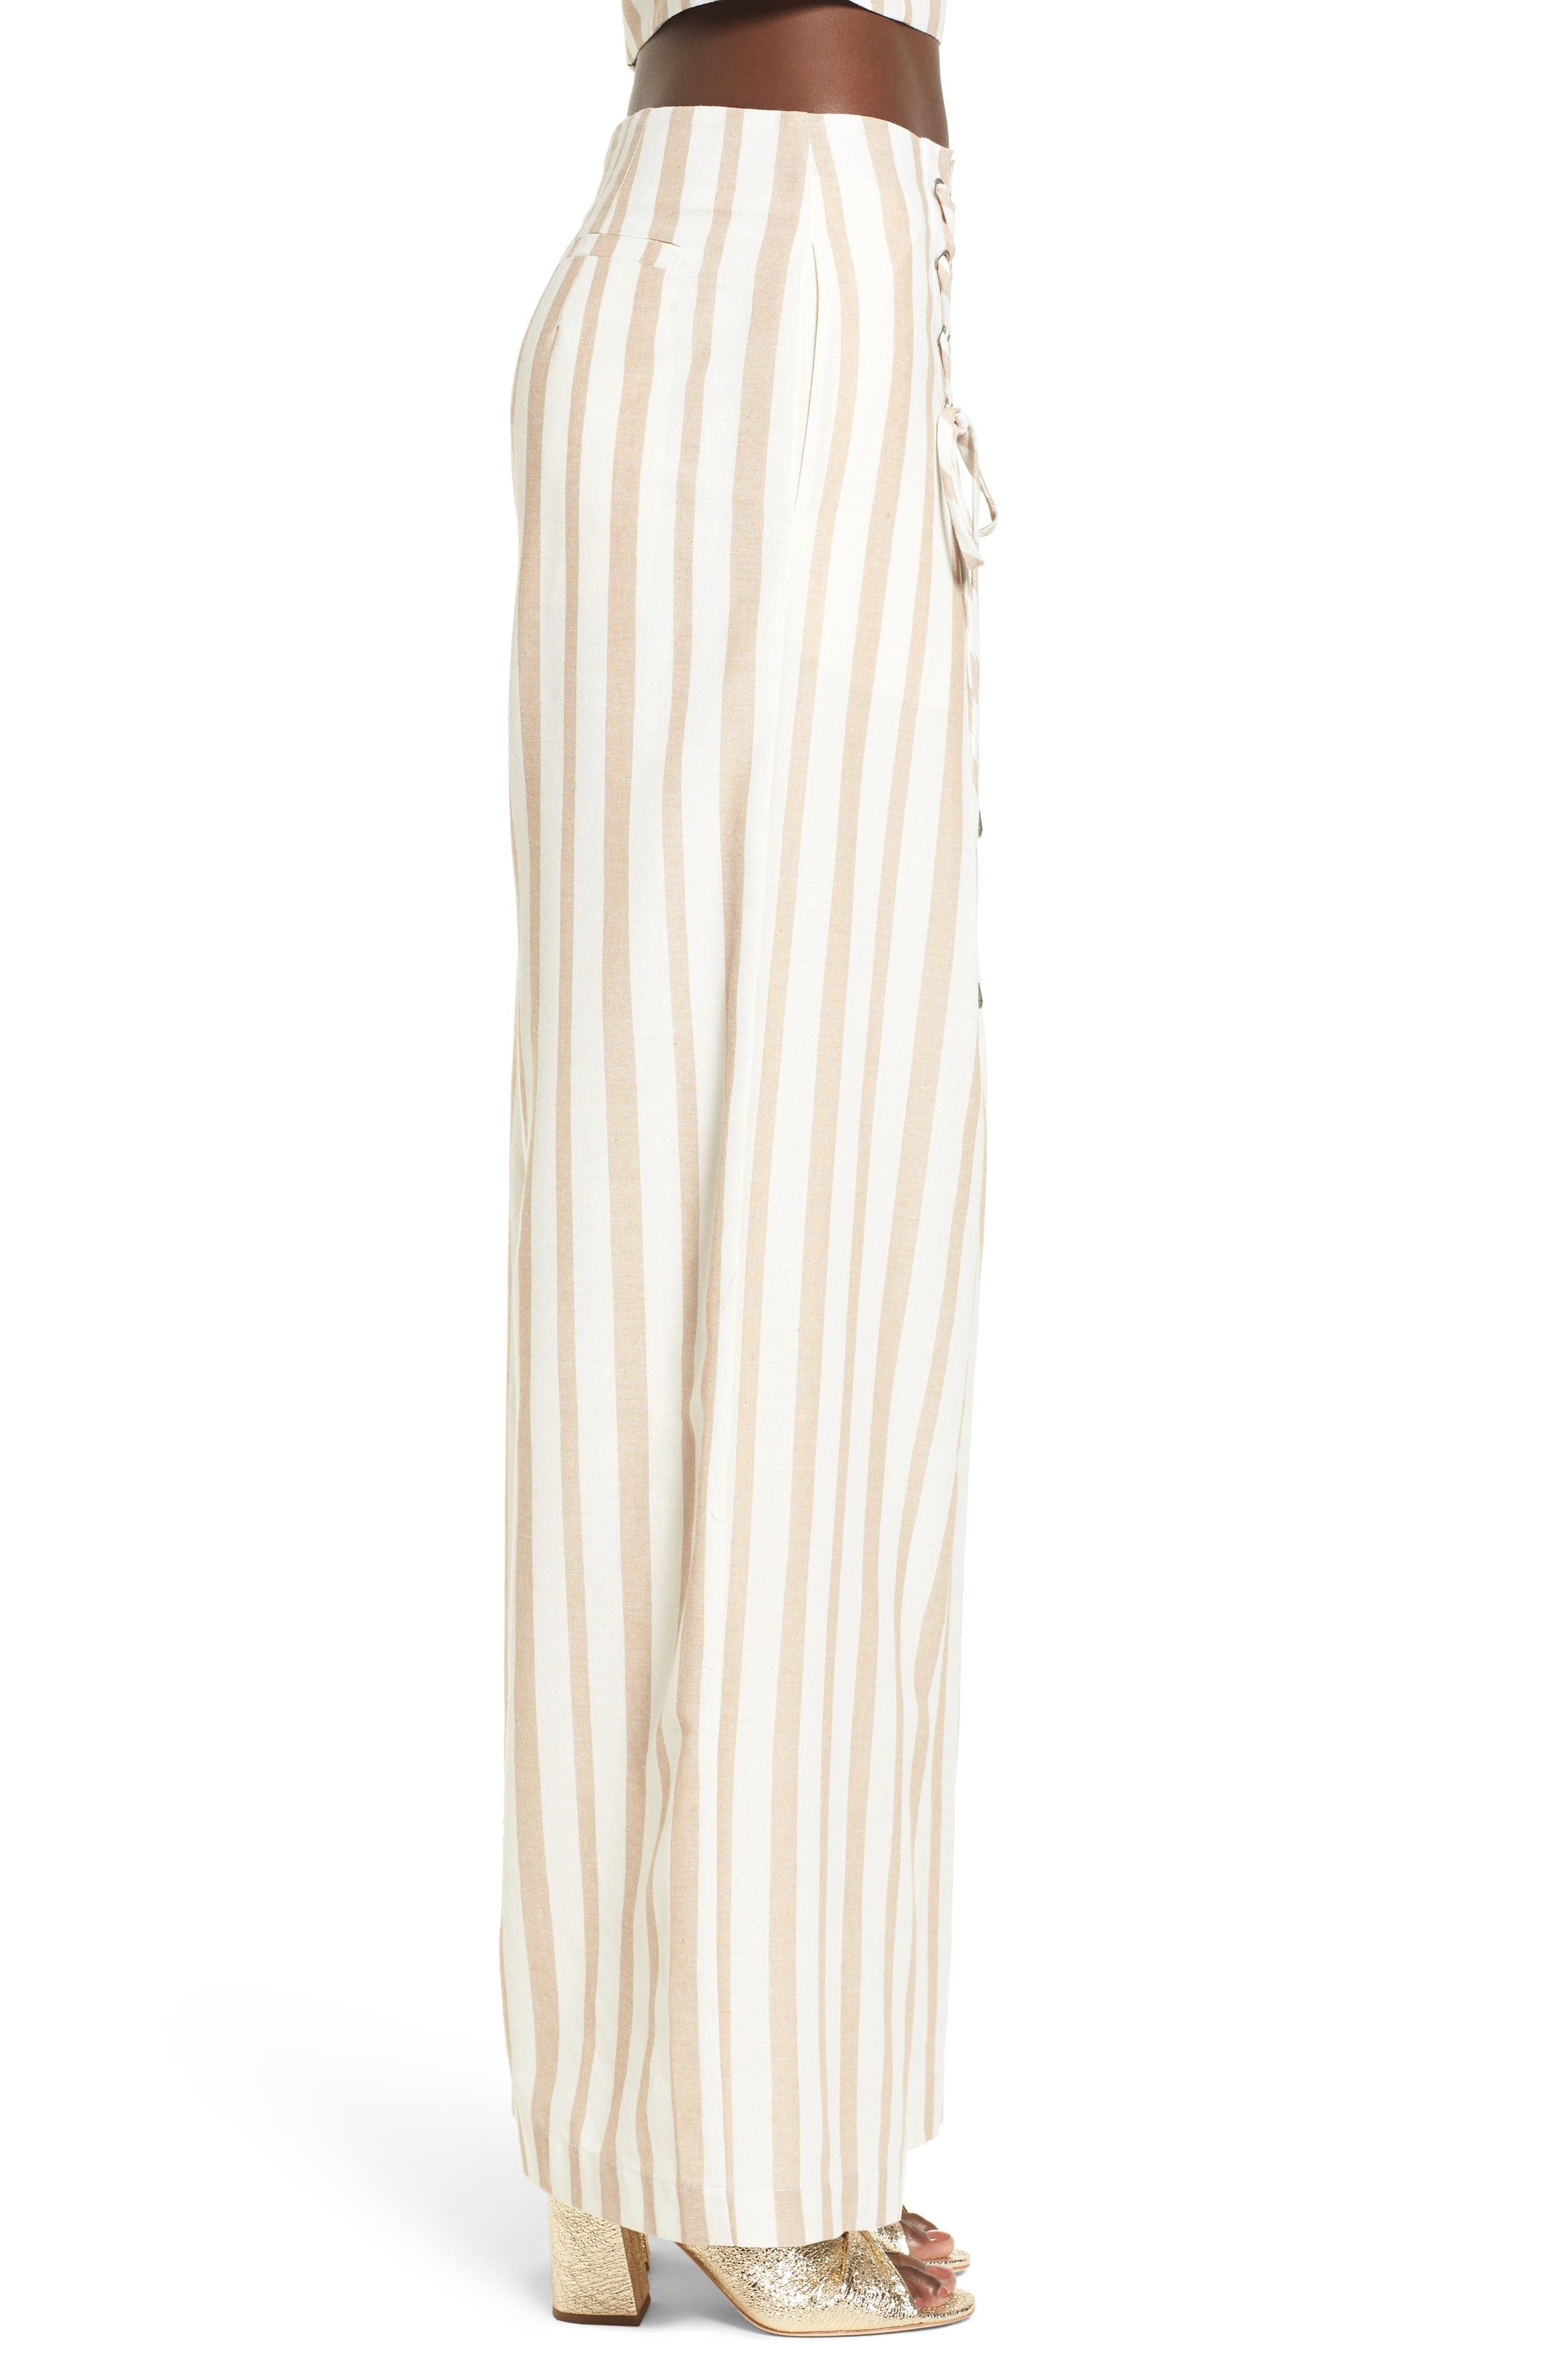 Chriselle x J.O.A. Lace-Up High Waist Wide Leg Pants,                             Alternate thumbnail 8, color,                             Sand Stripe